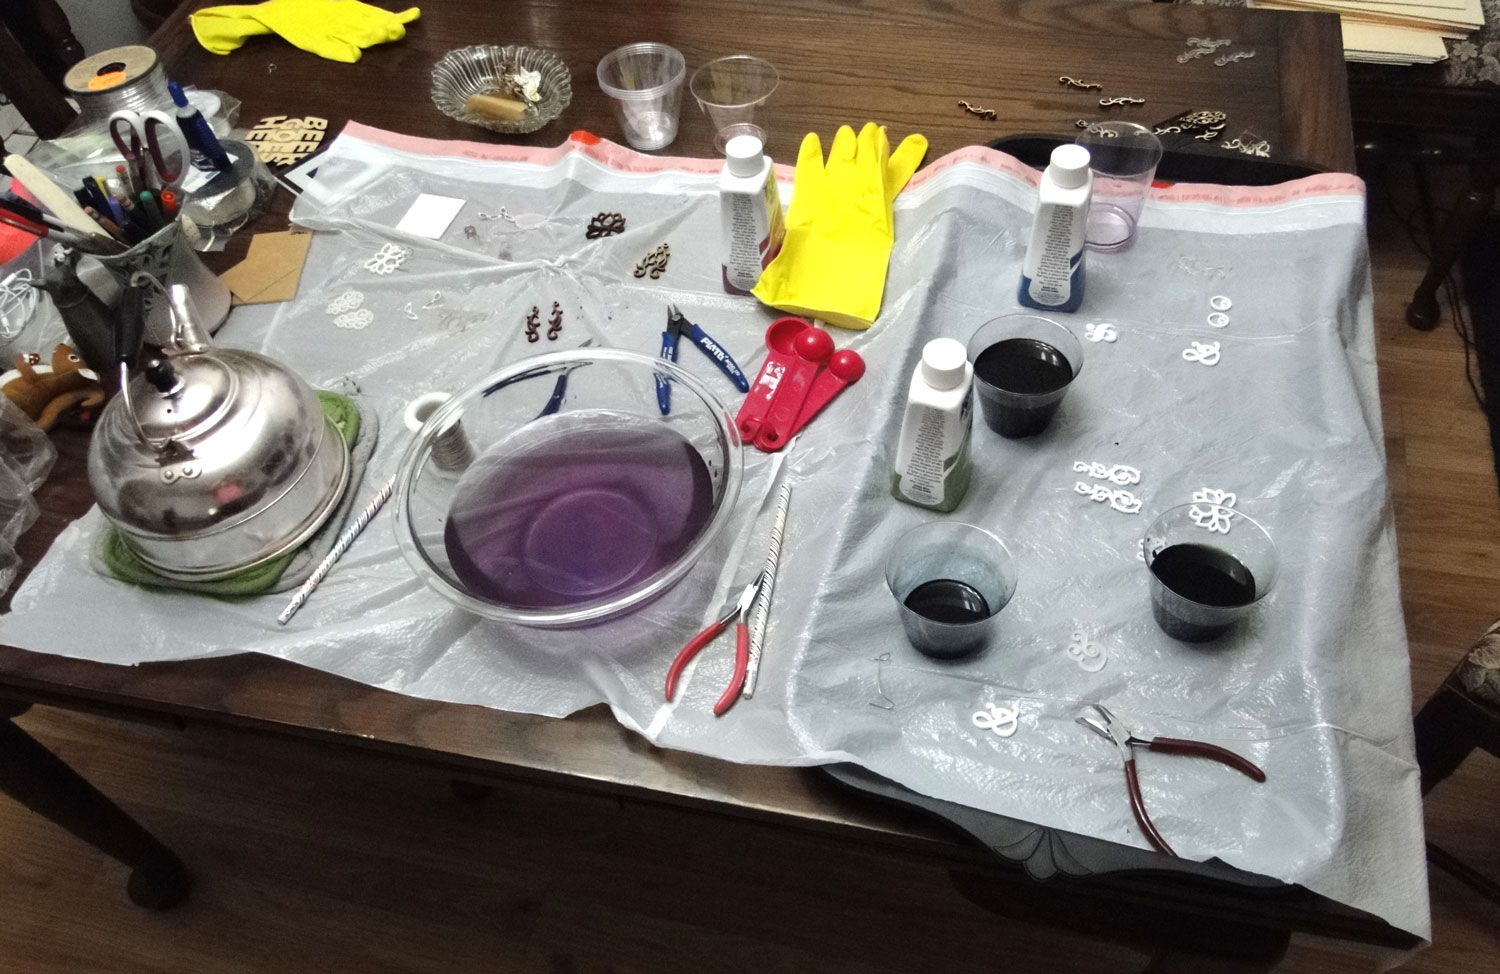 Discussion on this topic: How to Dye Acrylic Plastic, how-to-dye-acrylic-plastic/